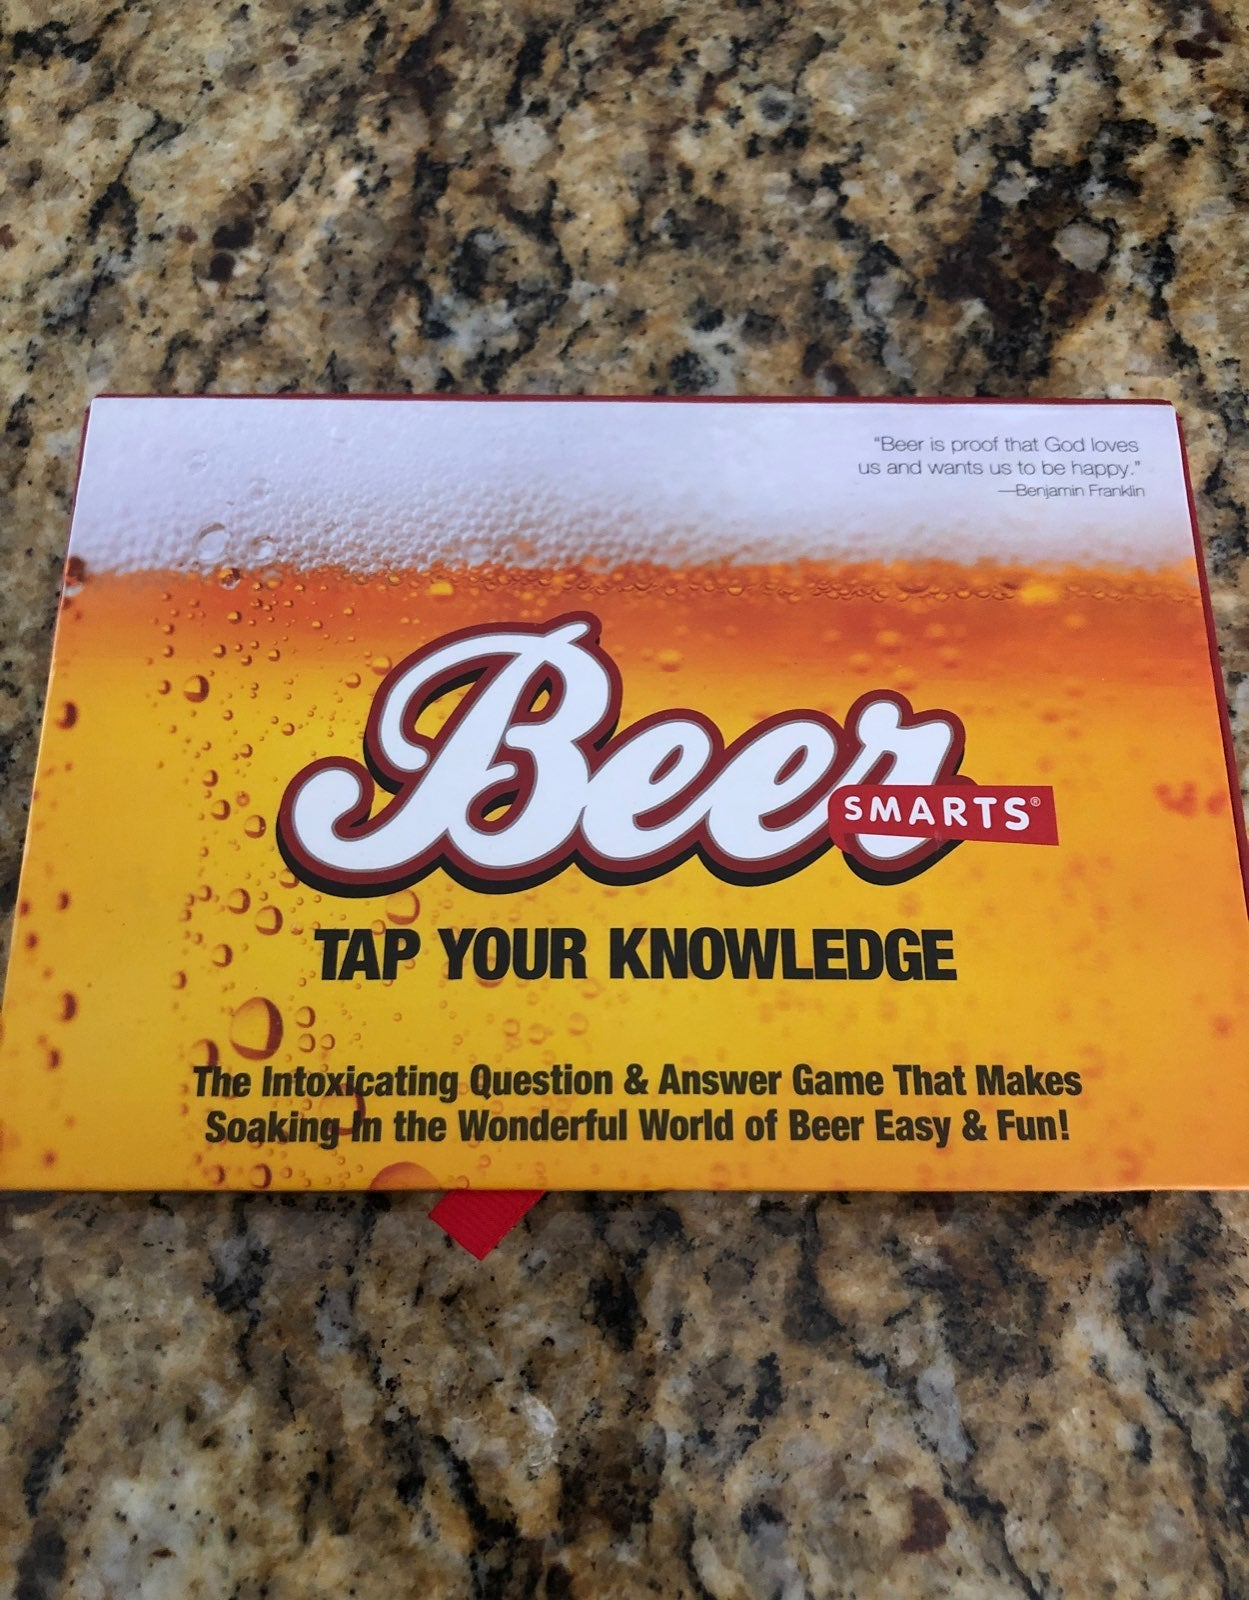 New beer smart tap your knowledge game